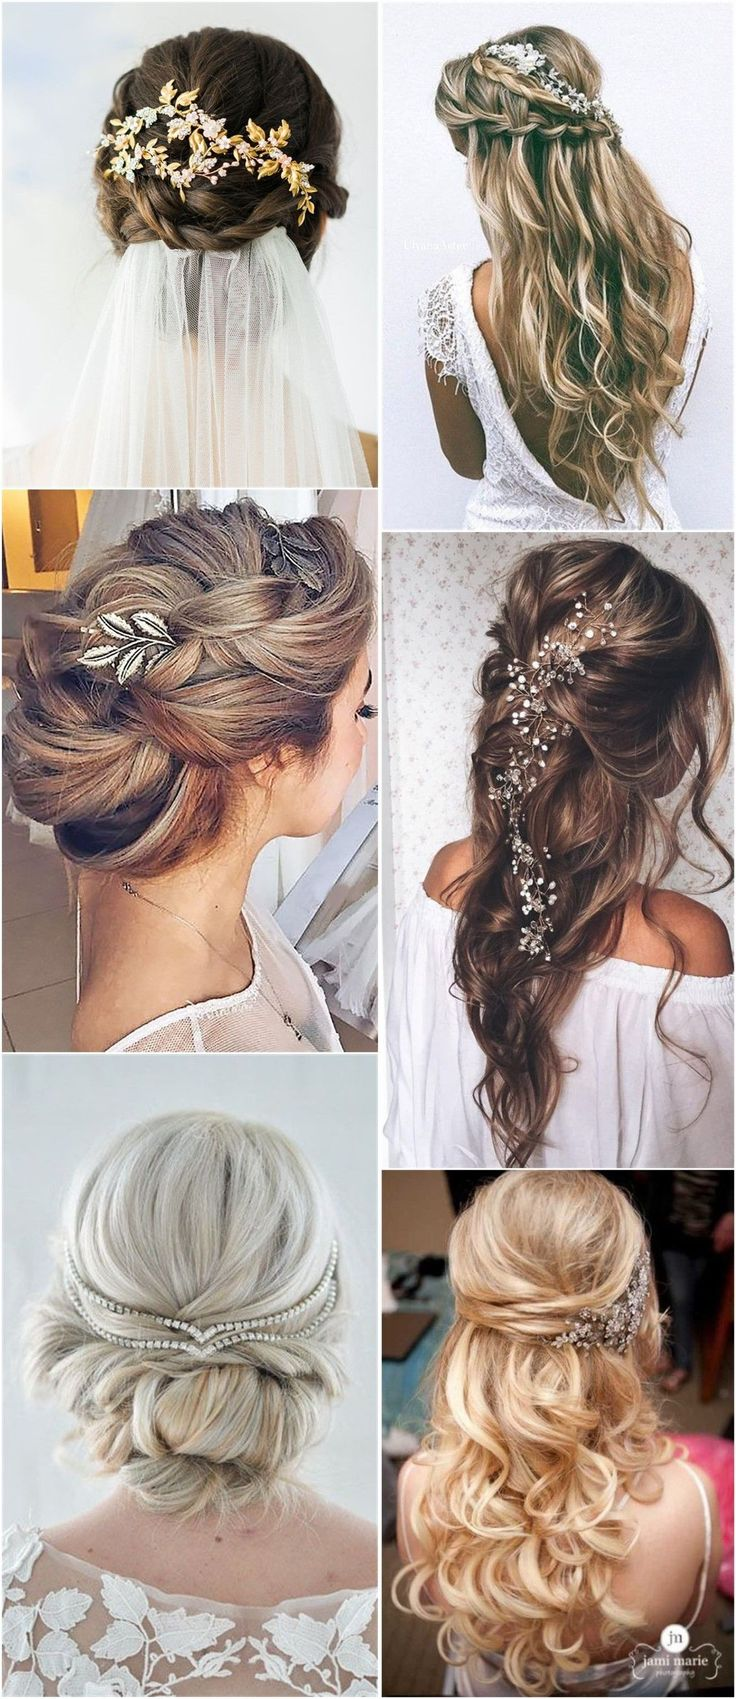 best hair accessories for wedding images on pinterest bridal